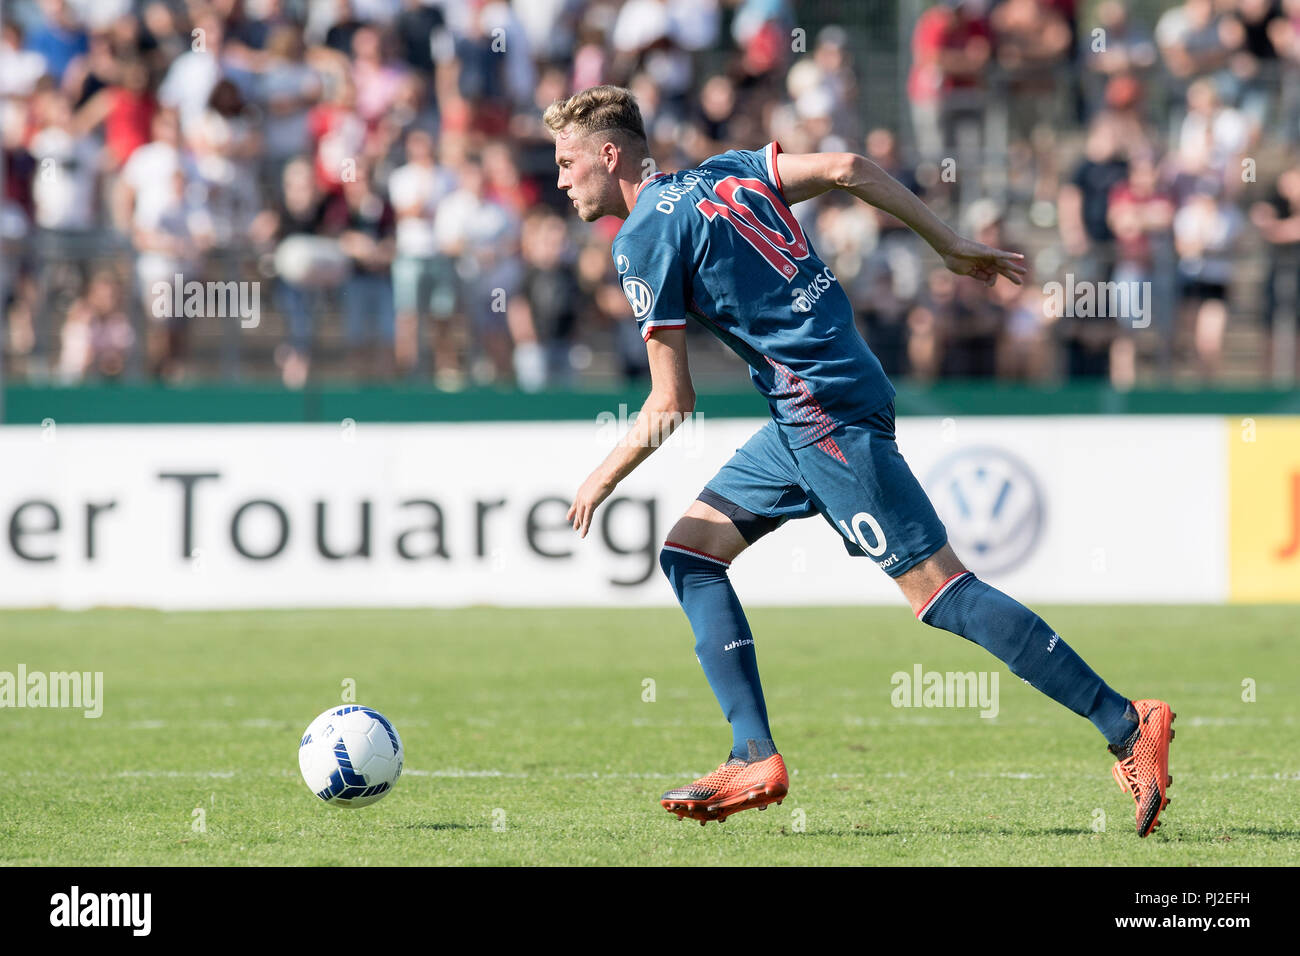 Marvin DUCKSCH (D) in action with ball, in profile, landscape; Soccer DFB Pokal, 1st Round, TuS RW Koblenz (KO) - Fortuna Dusseldorf 0: 5, on 19/08/2018 in Koblenz/Germany. DFL regulationos prohibit any use of images as image sequences and/or quasi-video | usage worldwide - Stock Image